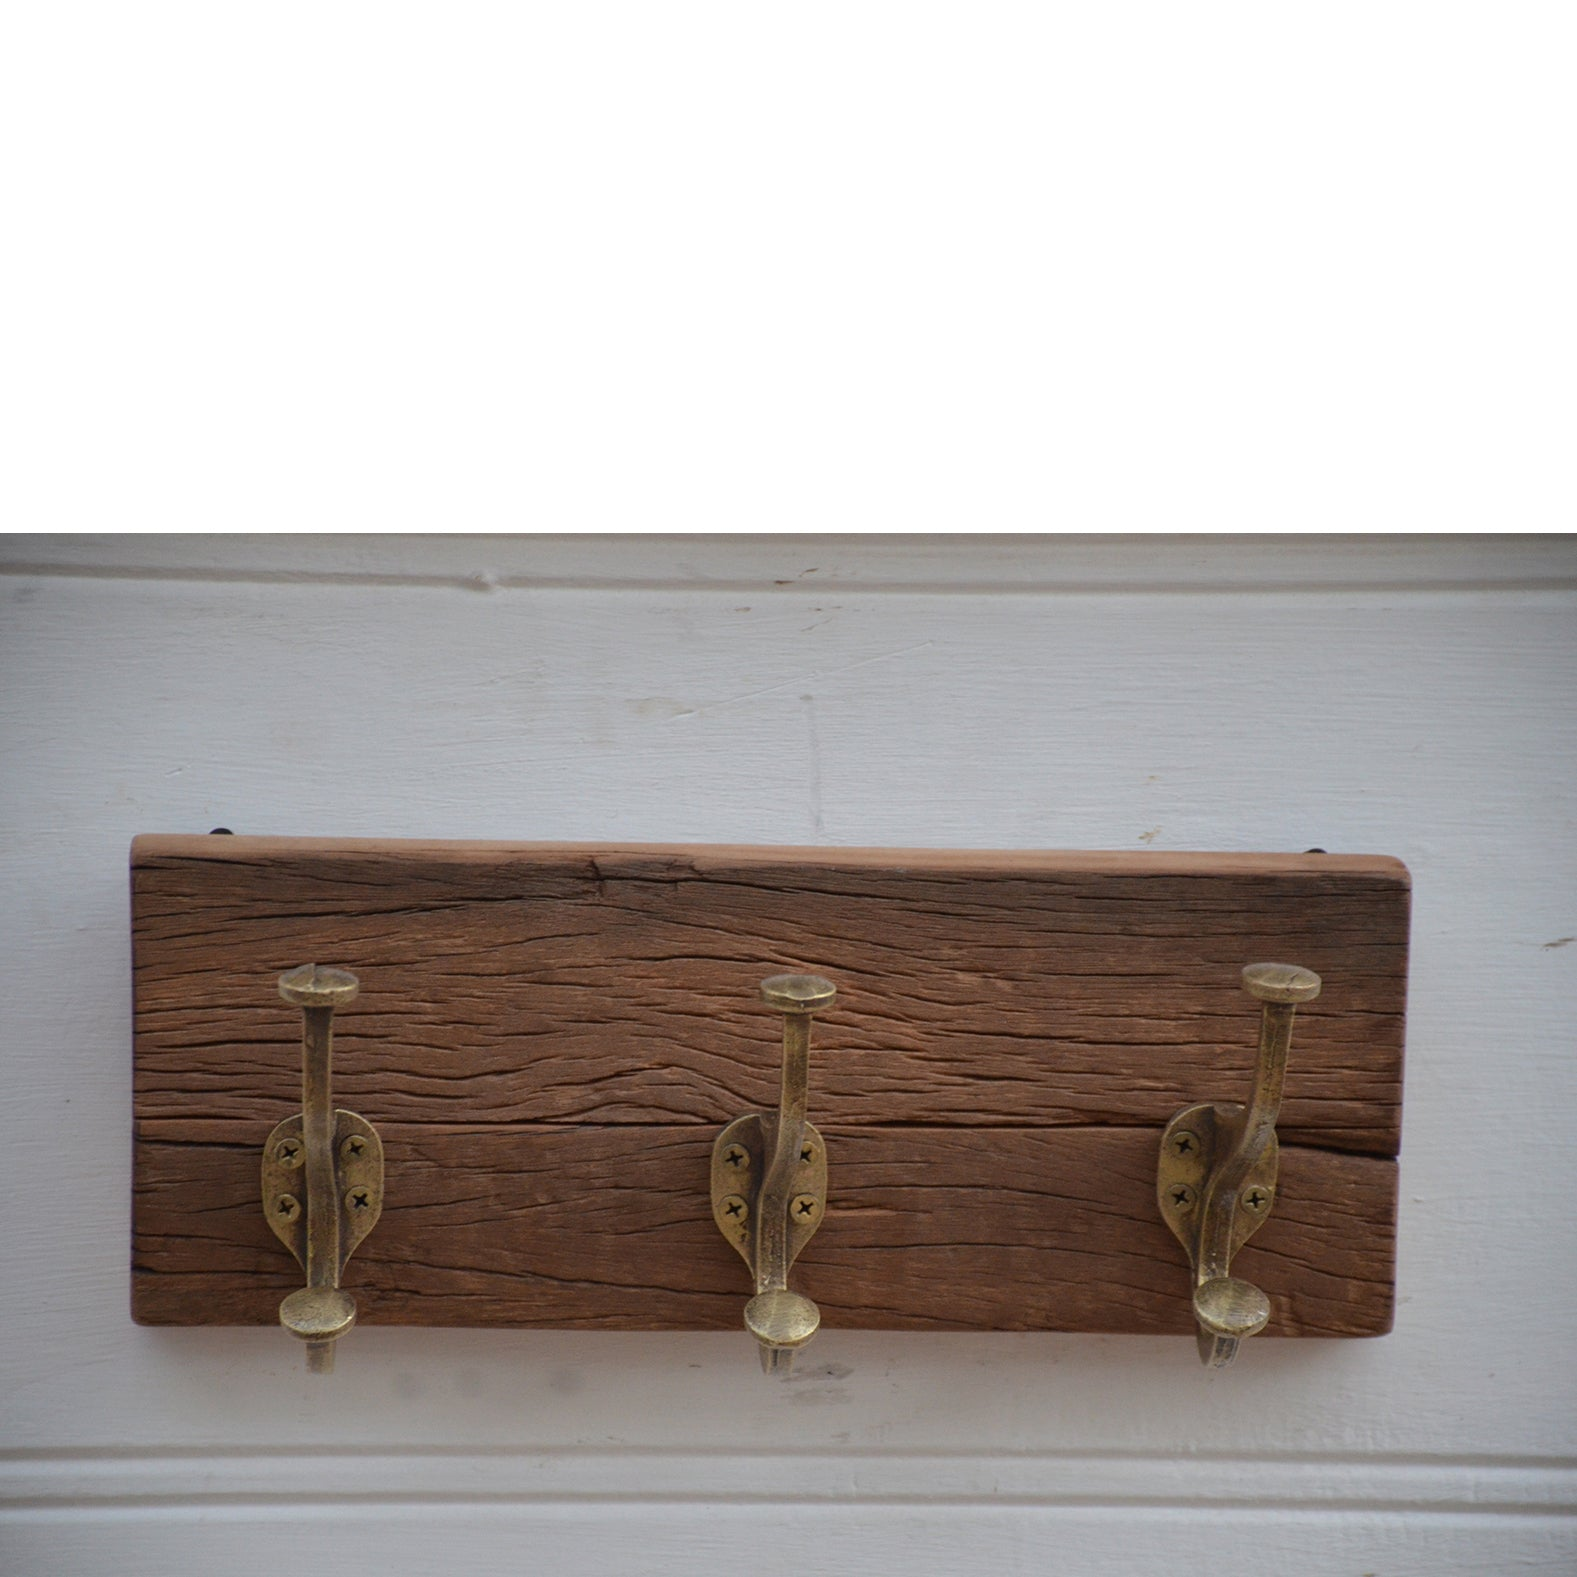 Reclaimed Timber Coat Hooks 3 Coat Hooks